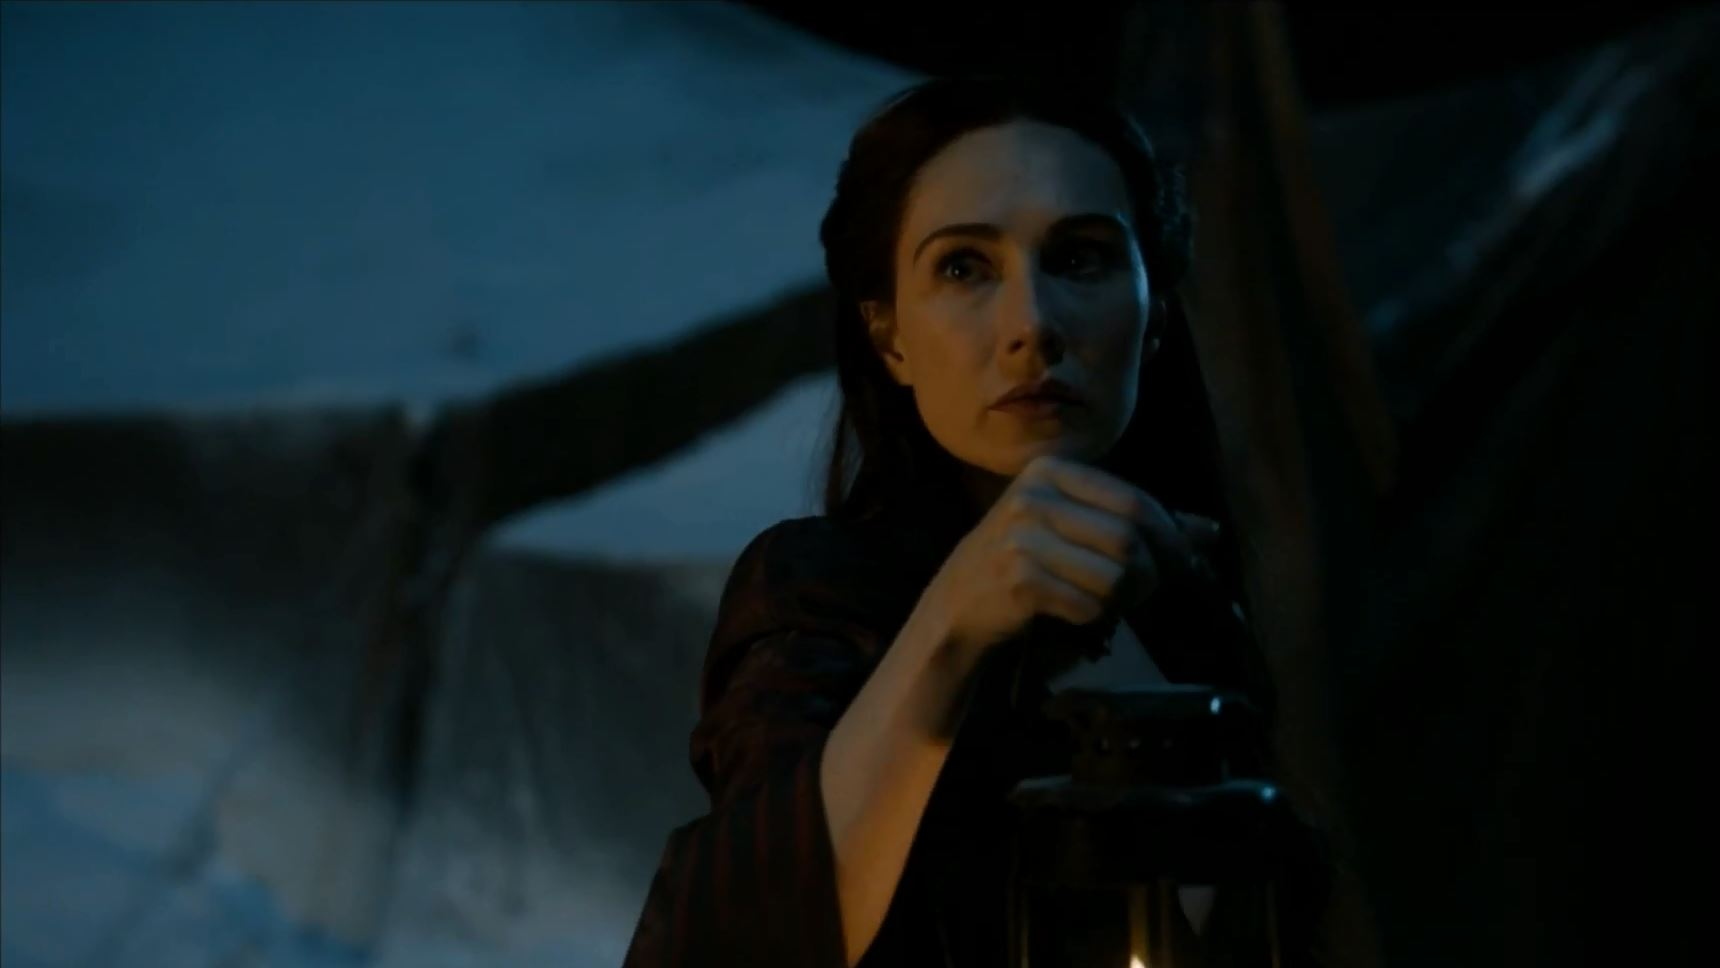 Game of Thrones Season 5 Trailer 2